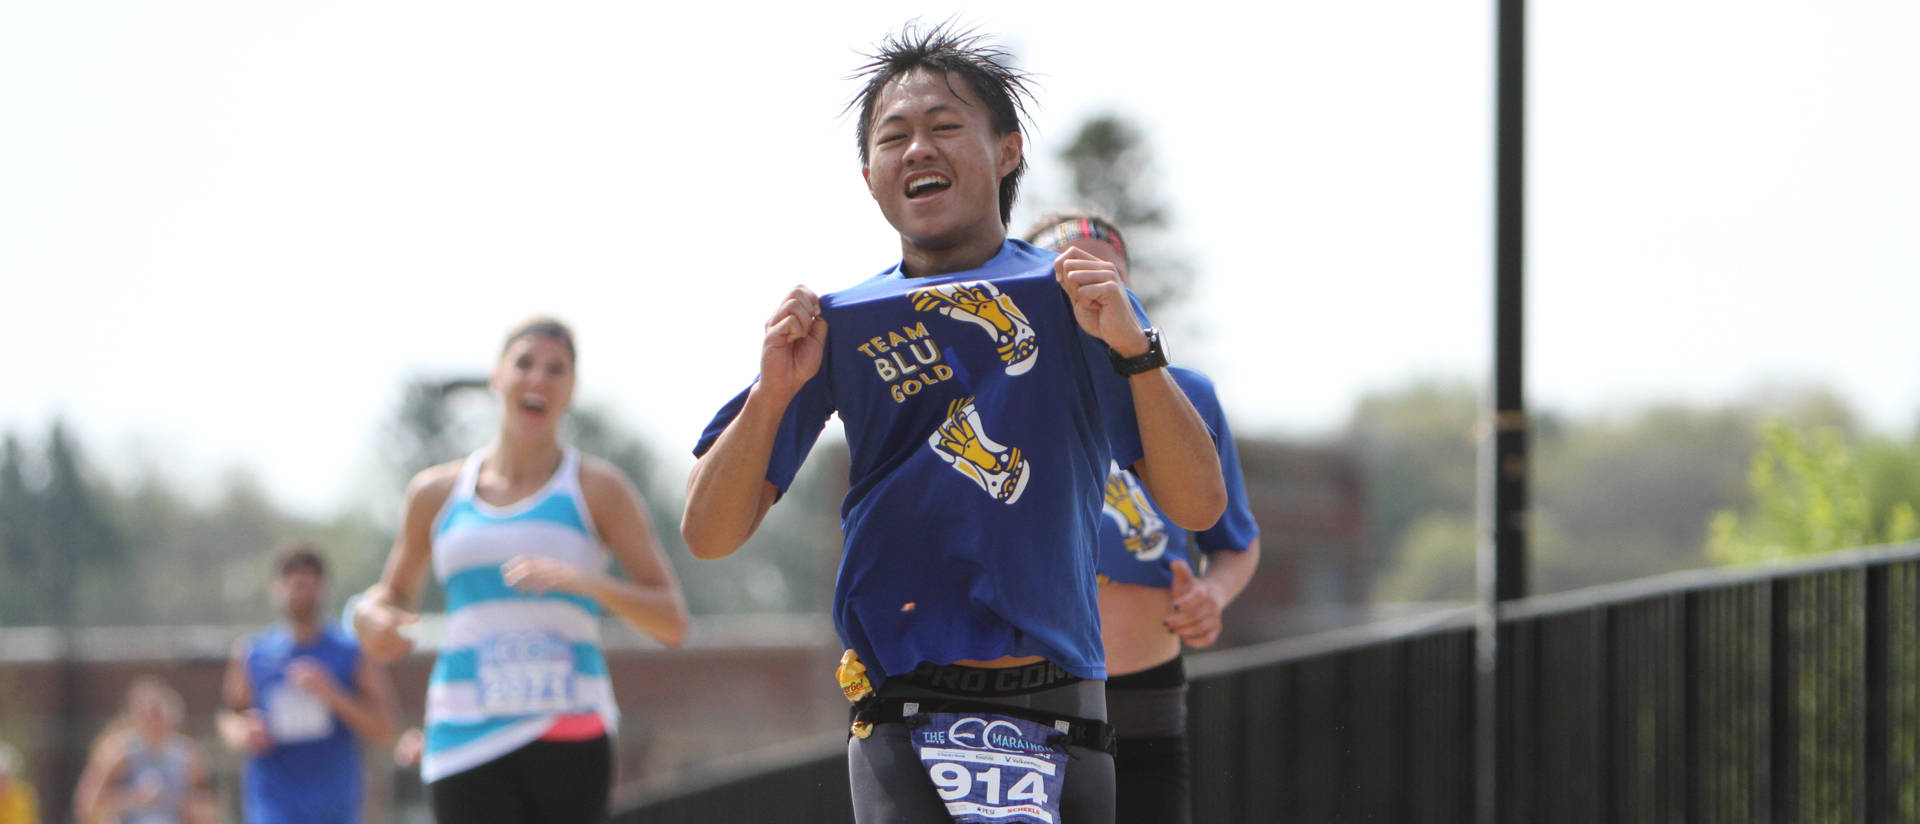 Blugold Mile fun motivates marathoners to finish strong ...